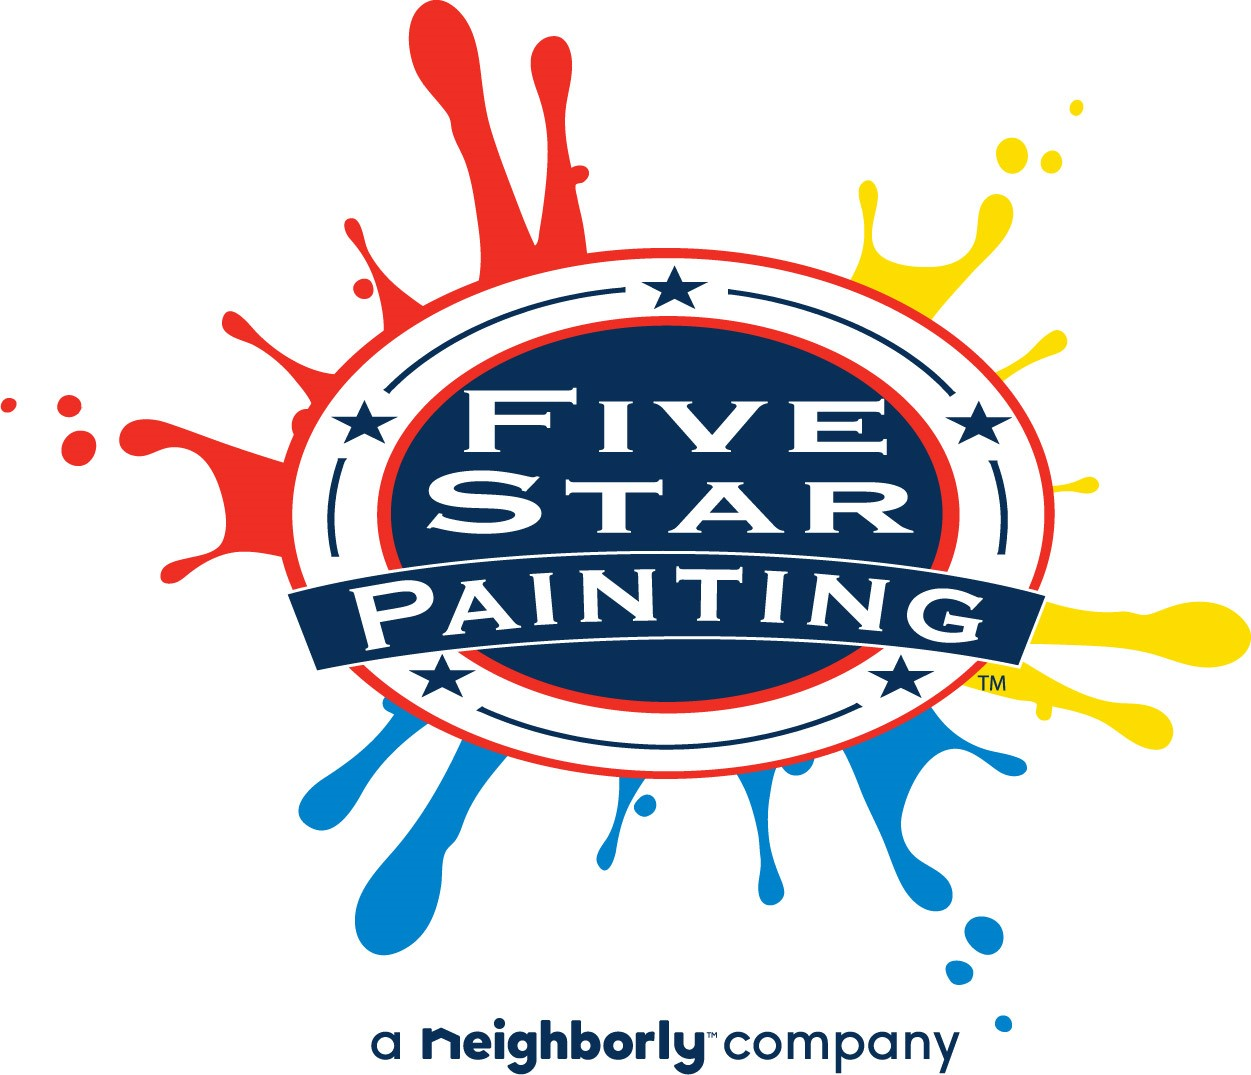 Five Star Painting of Dallas logo